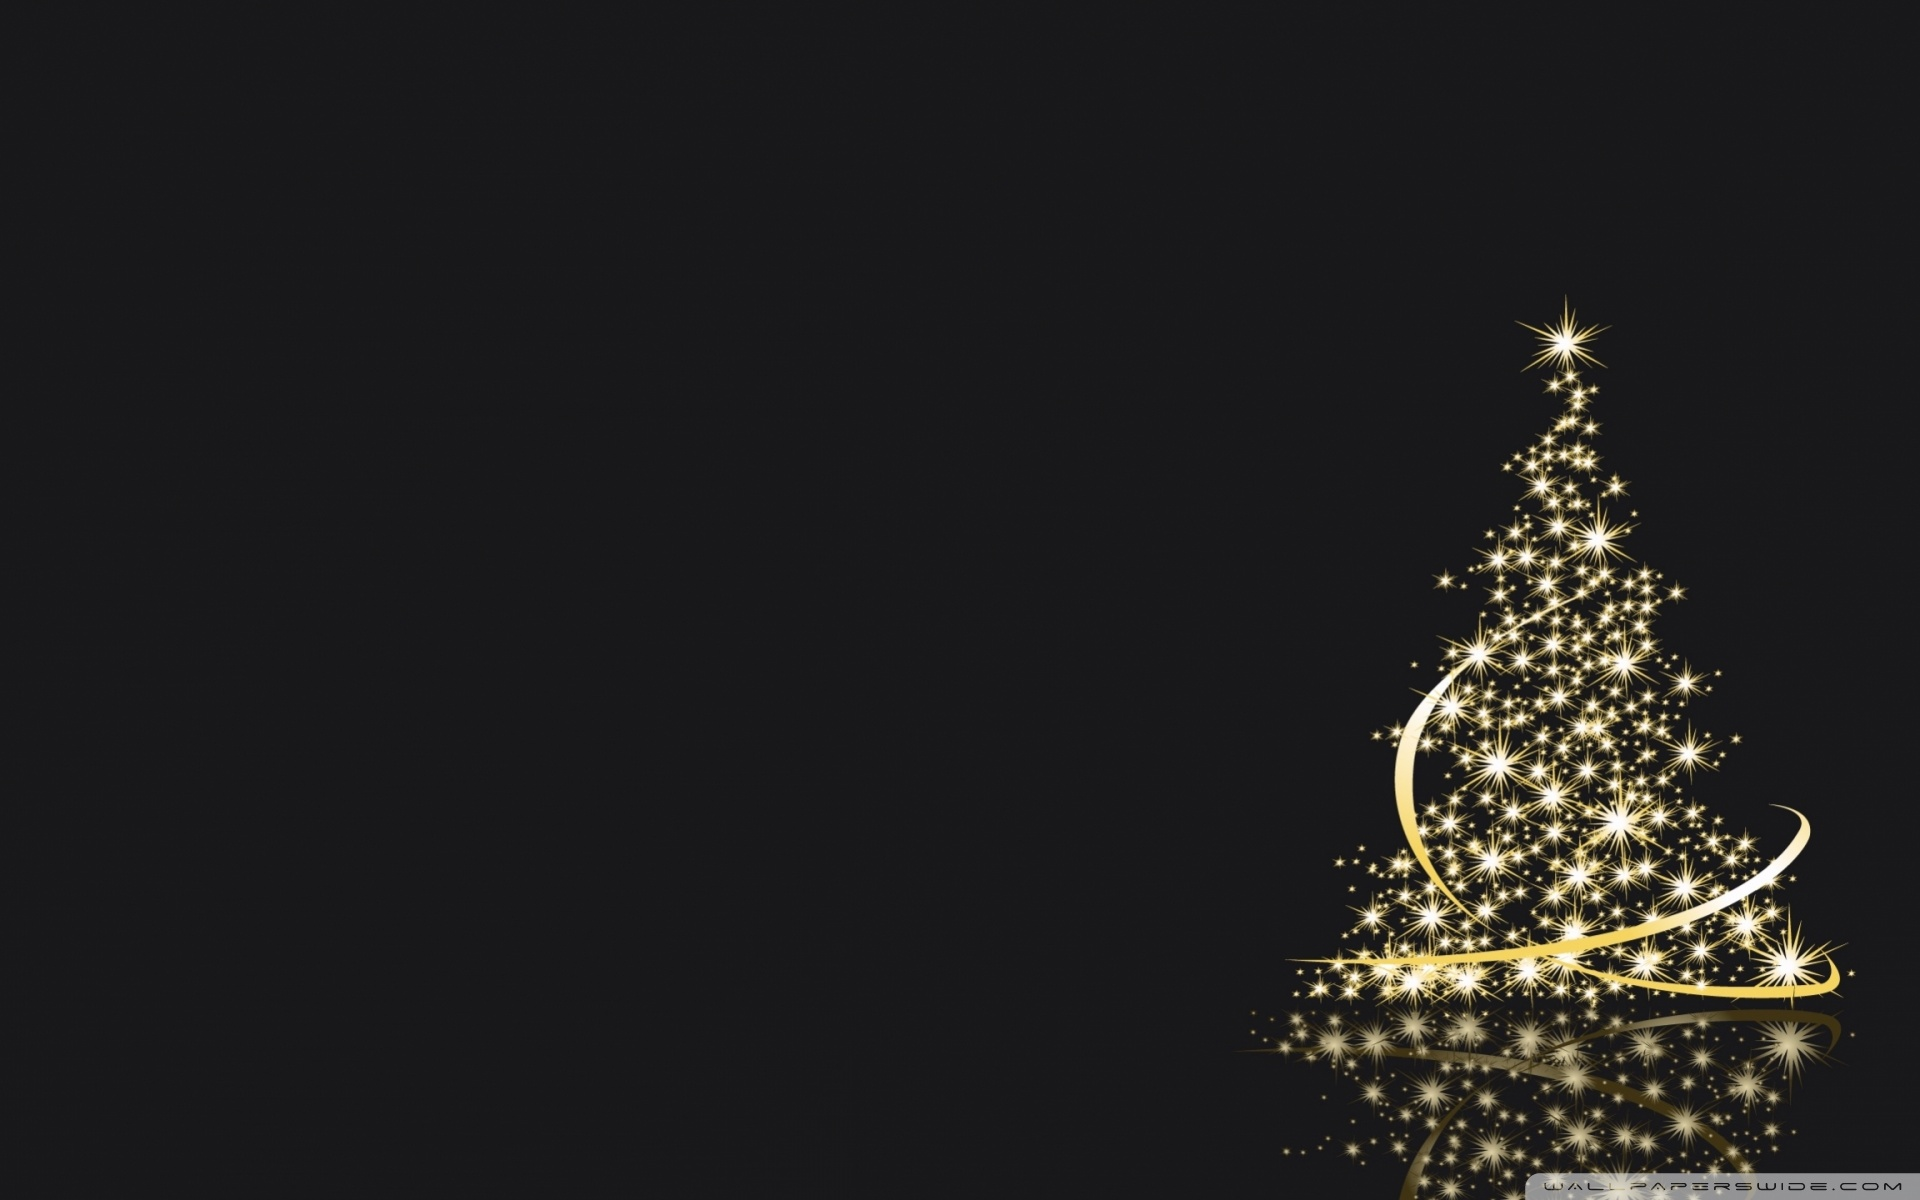 Abstract Christmas Tree Wallpaper   HD Wallpapers 1920x1200